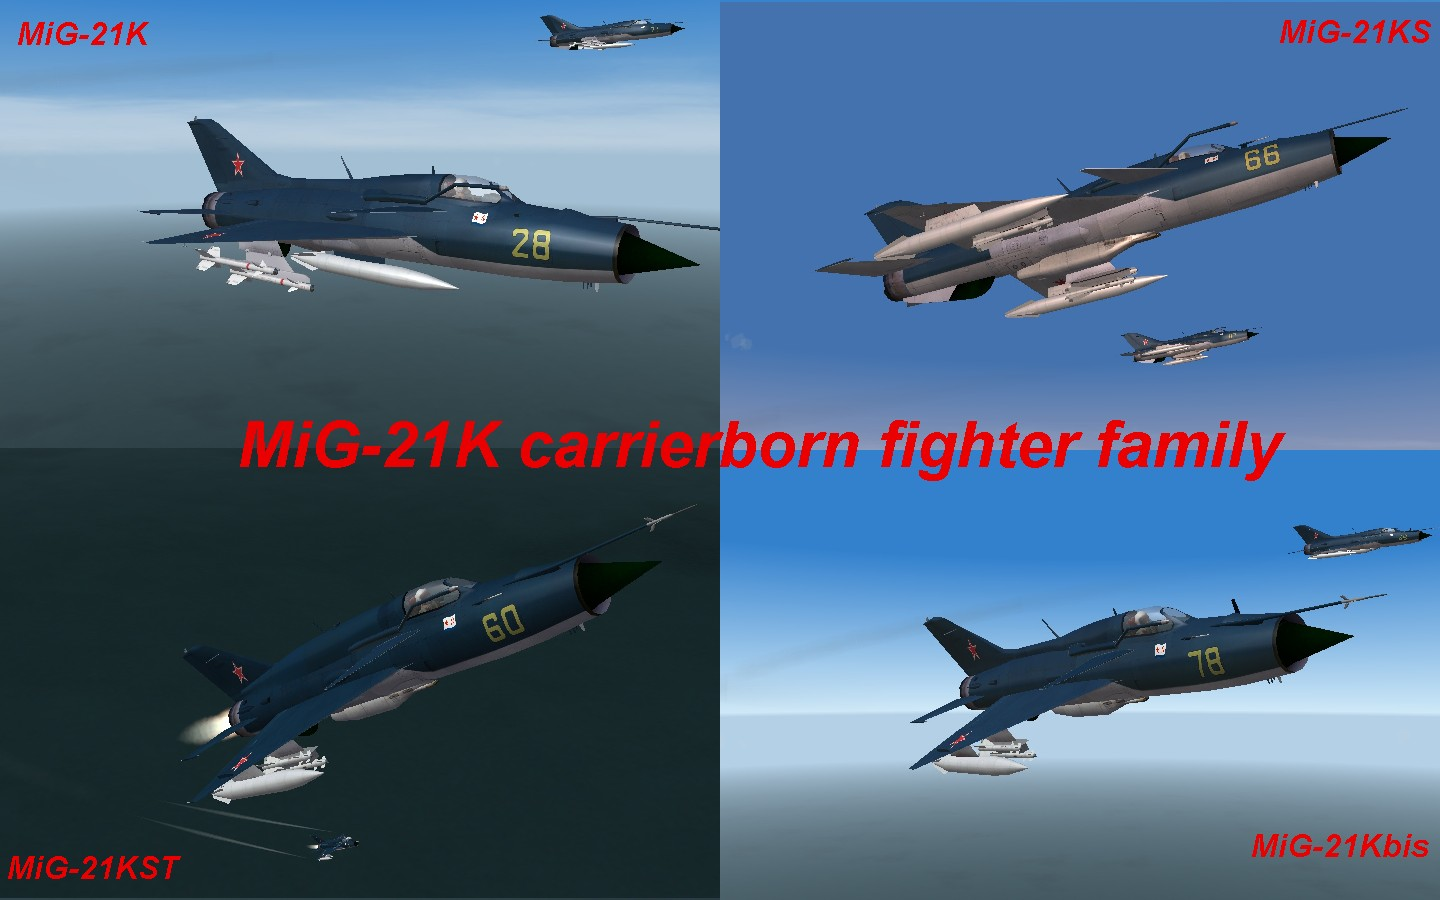 MiG-21K carrierborn fighter family